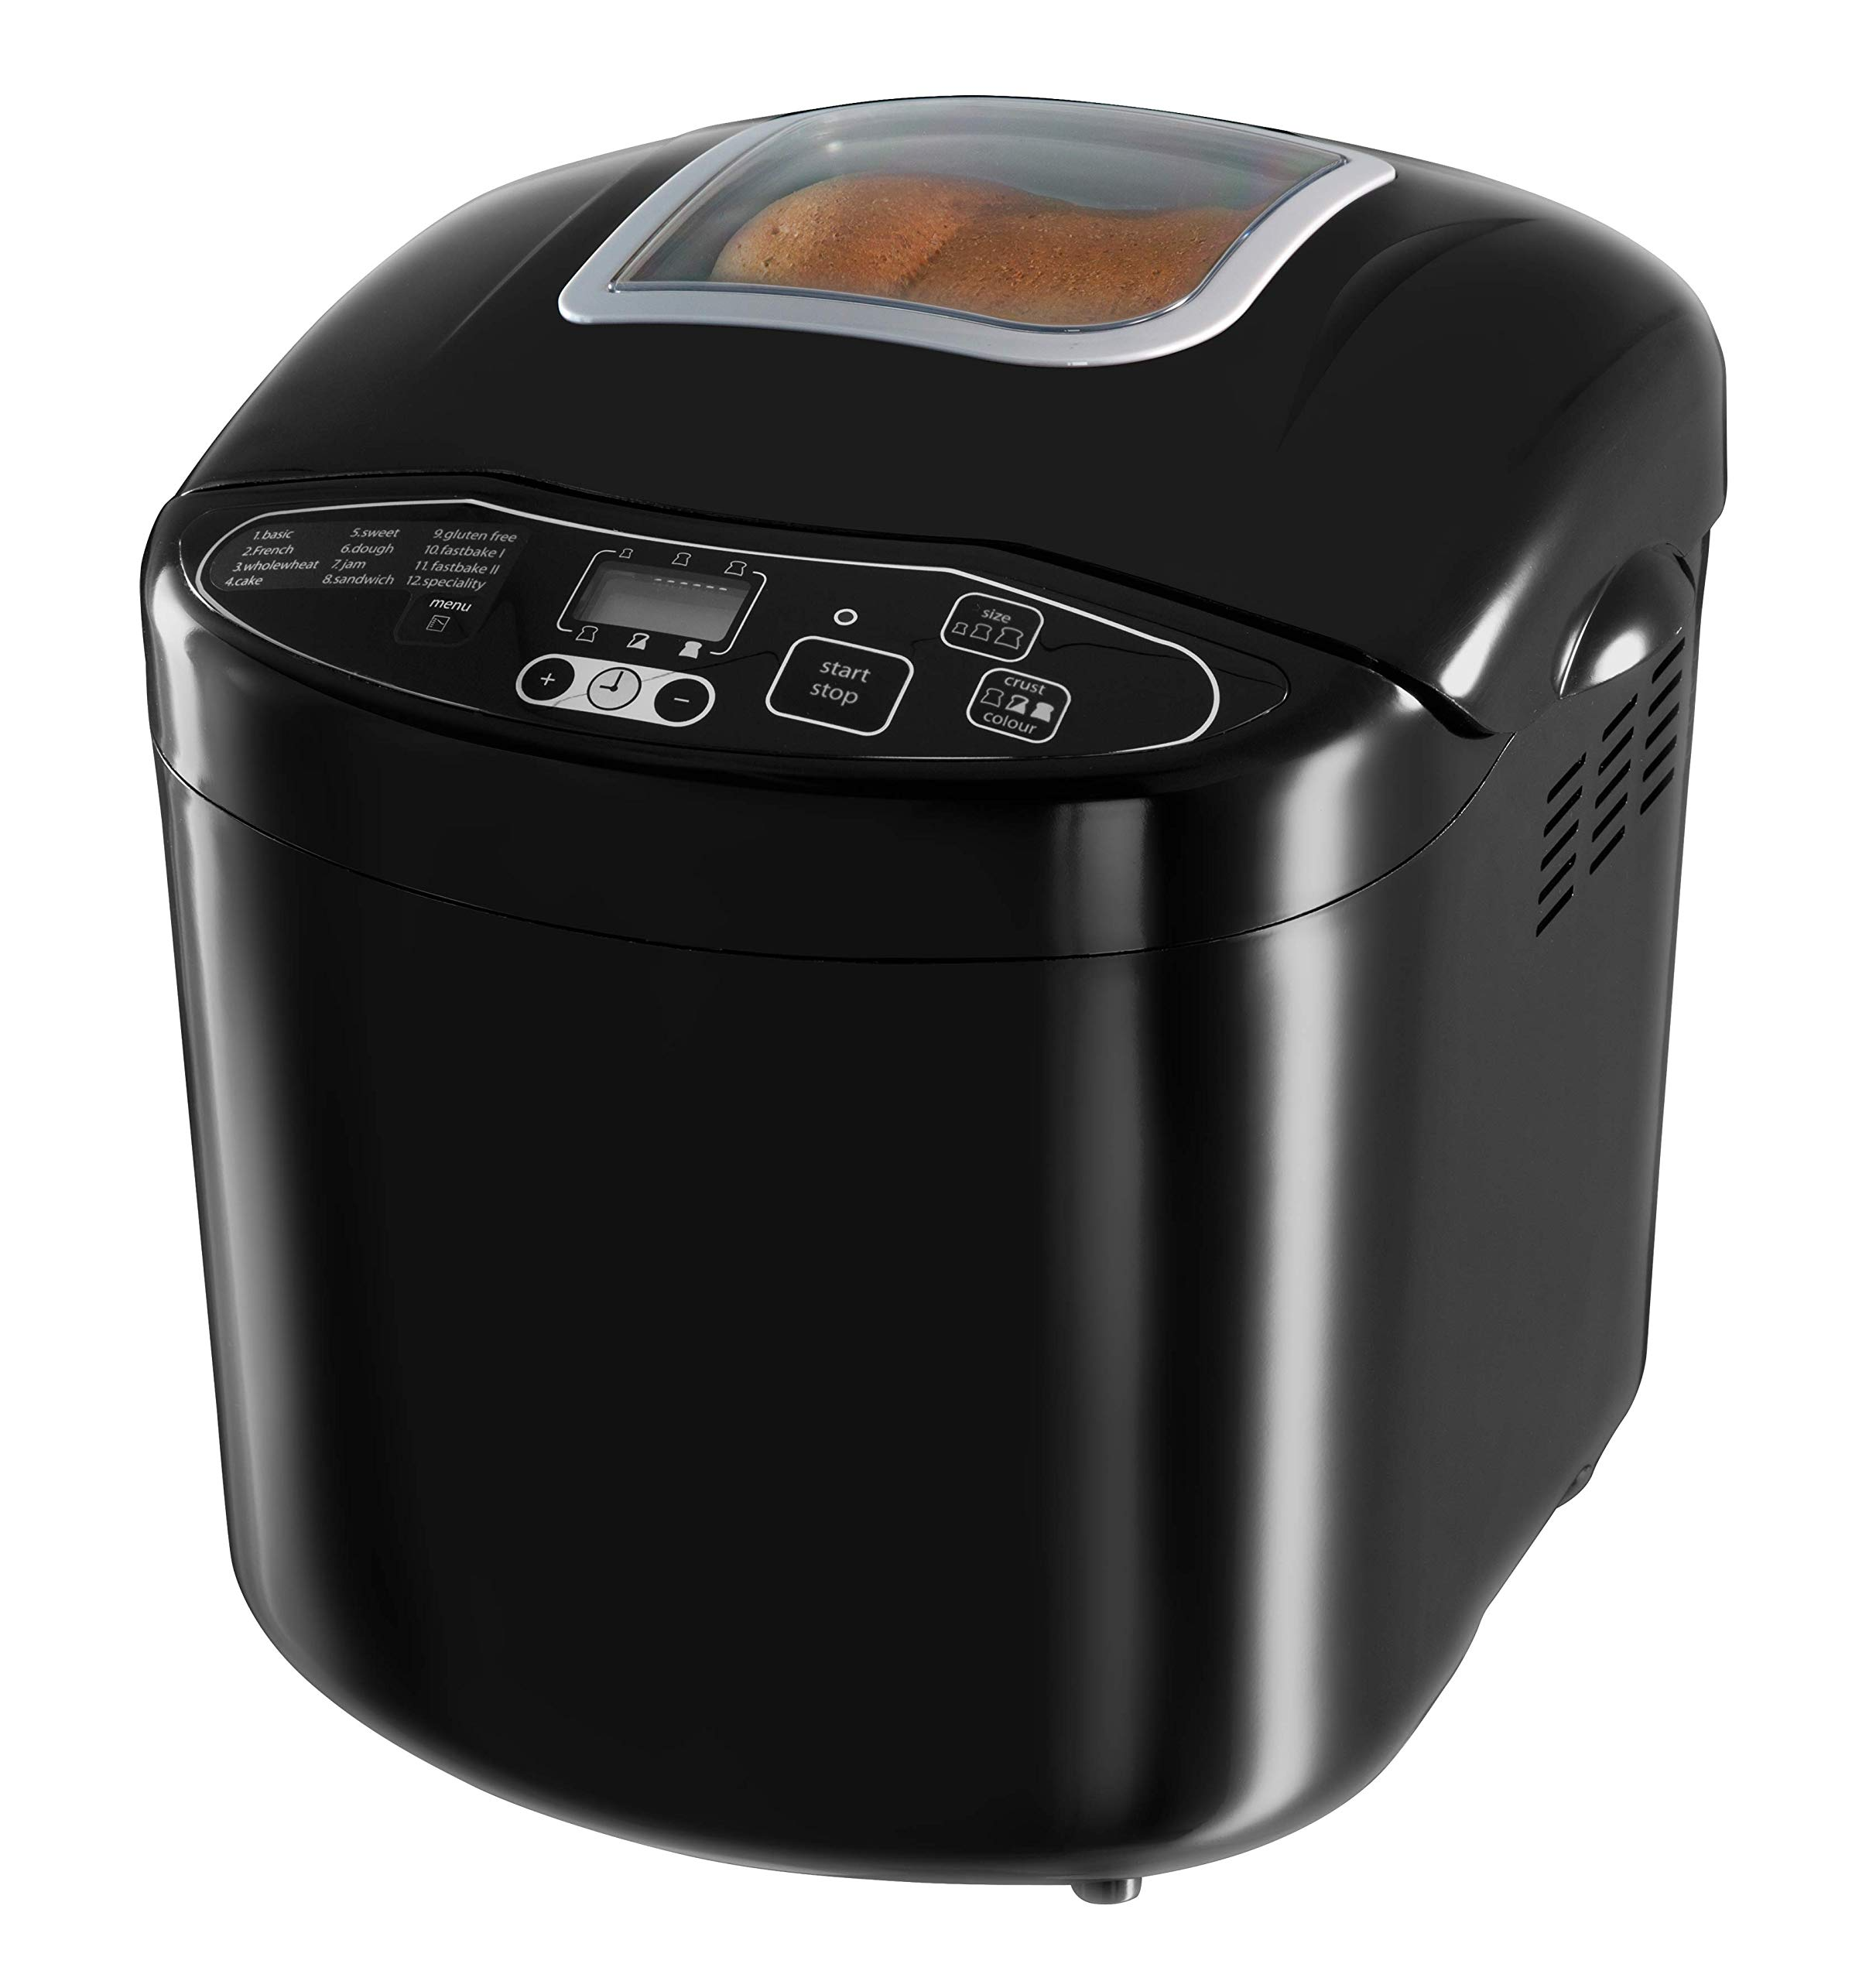 Russell Hobbs 23620 Compact Fast Breadmaker, 660 W, Black